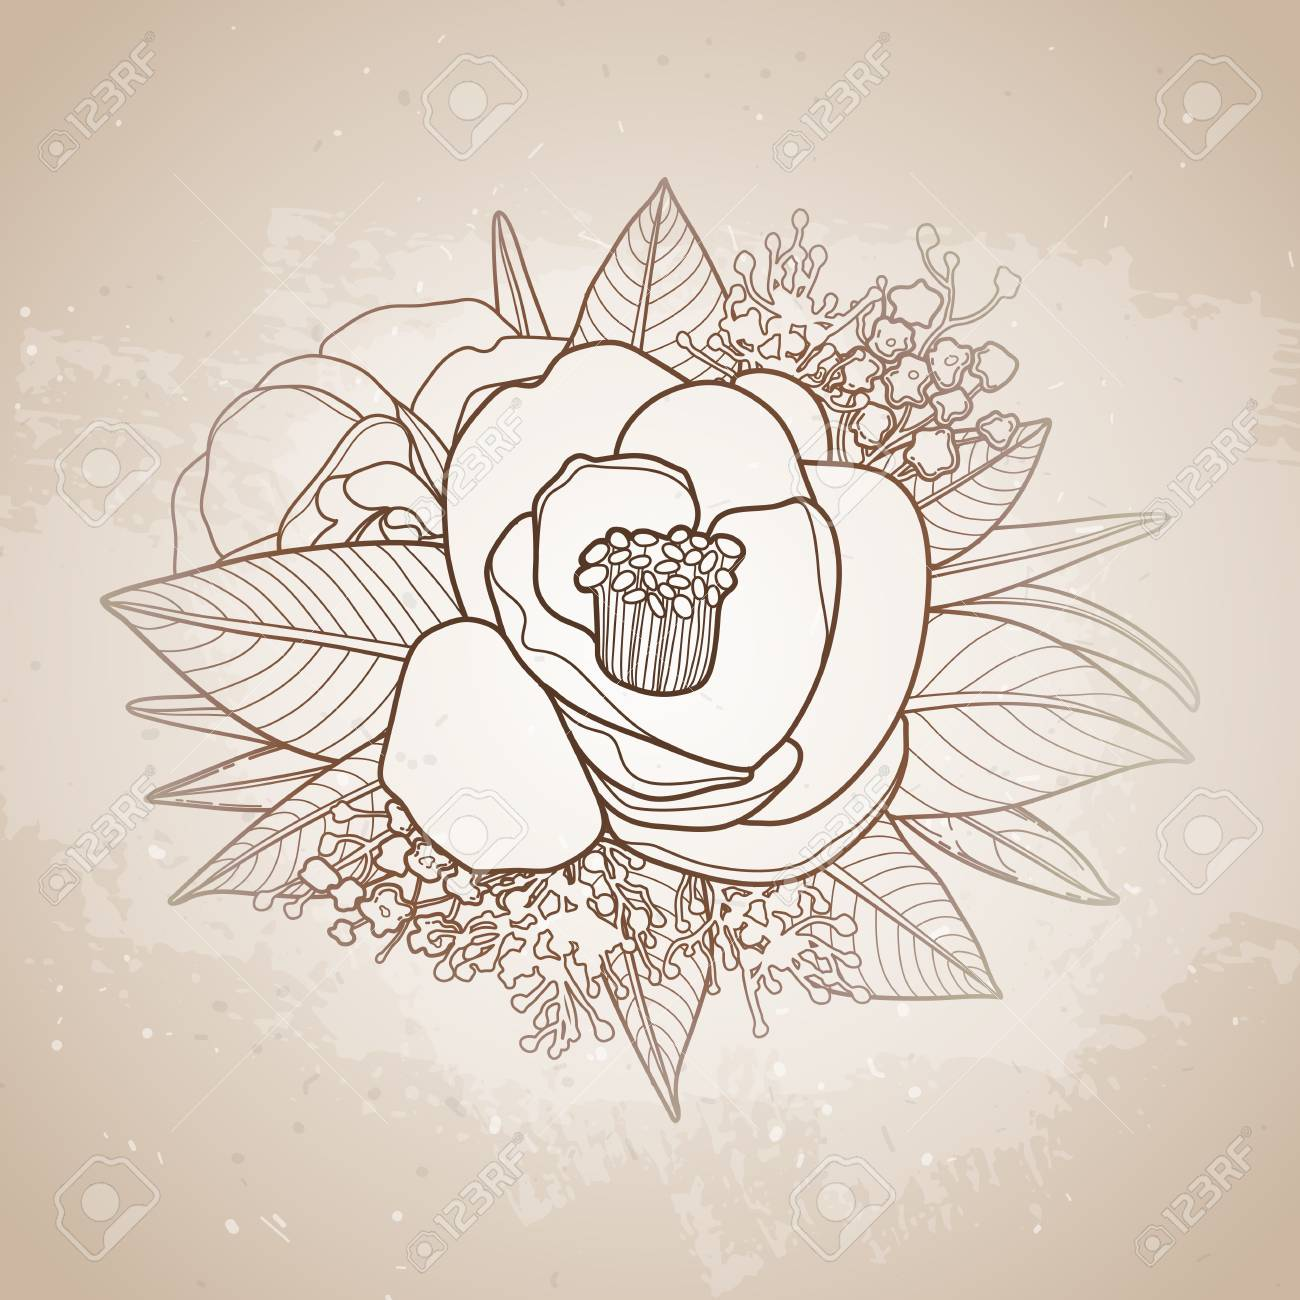 Vector Camellia Leaves And Flowers In Cute Vignette Isolated On Aged Texture